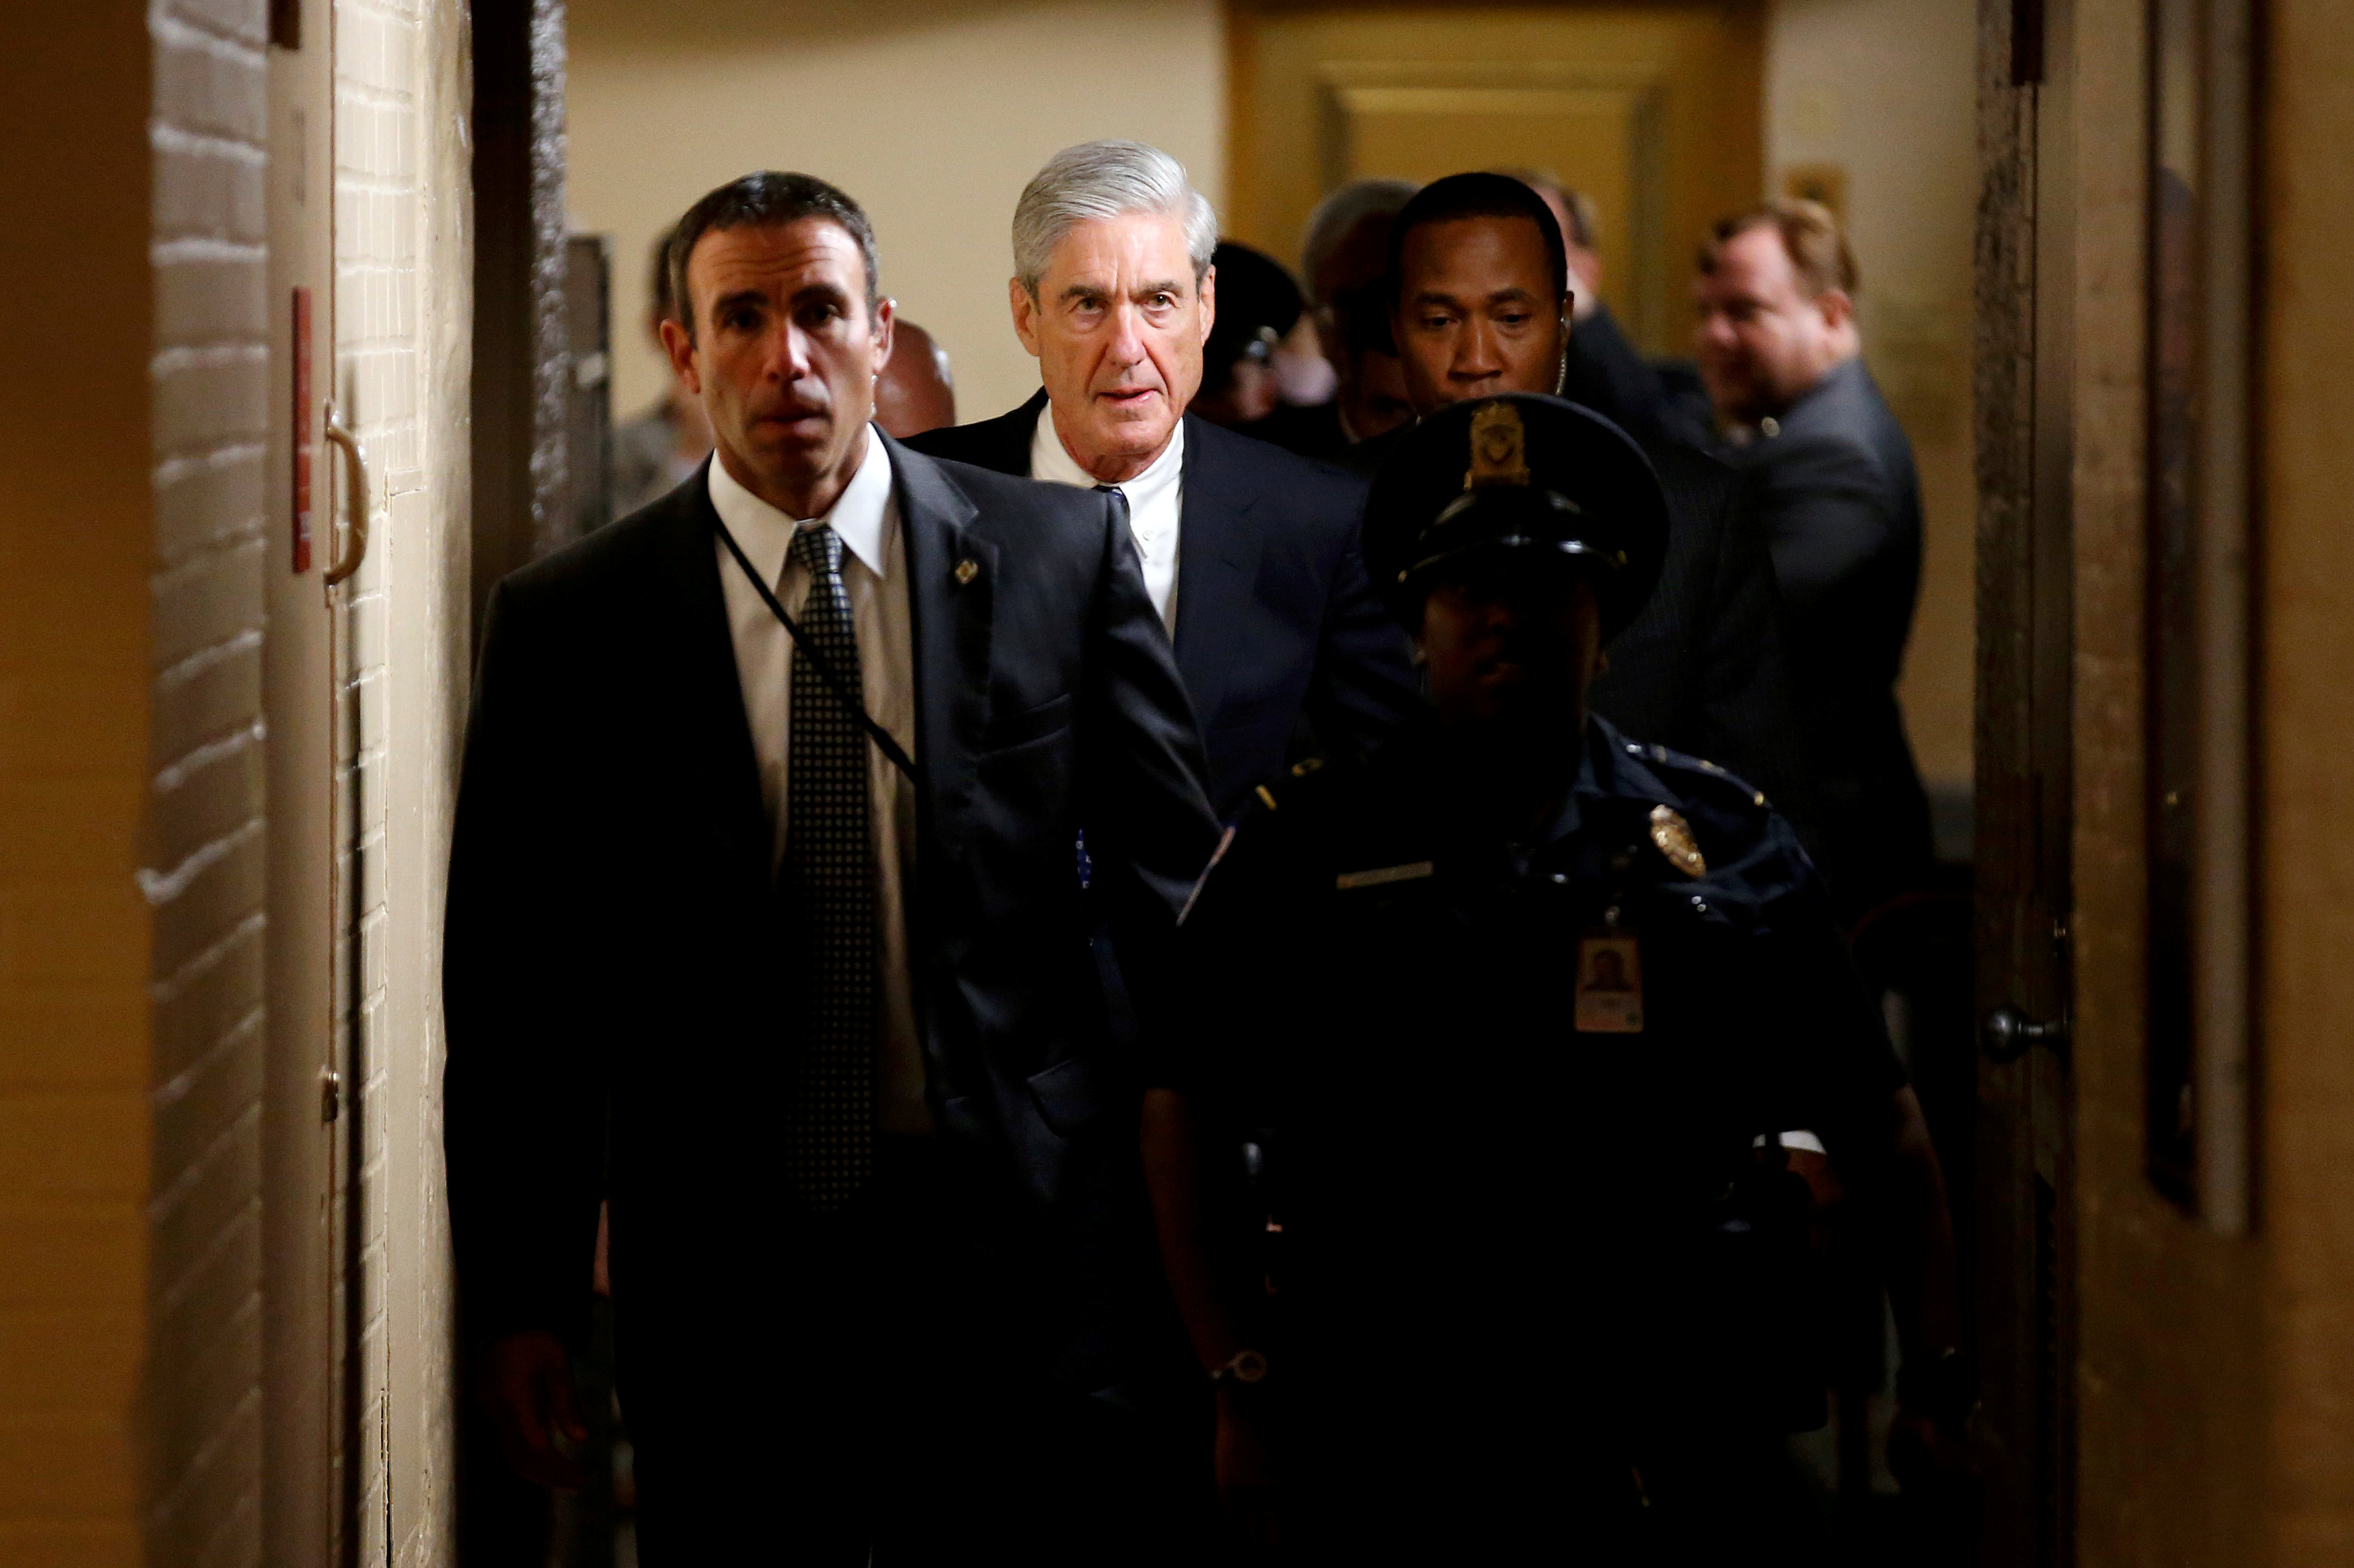 Special Counsel Robert Mueller departs surrounded by police and security after briefing members of the U.S. Senate on his investigation into potential collusion between Russia and the Trump campaign on Capitol Hill in Washington, U.S., June 21, 2017. REUTERS/Joshua Roberts